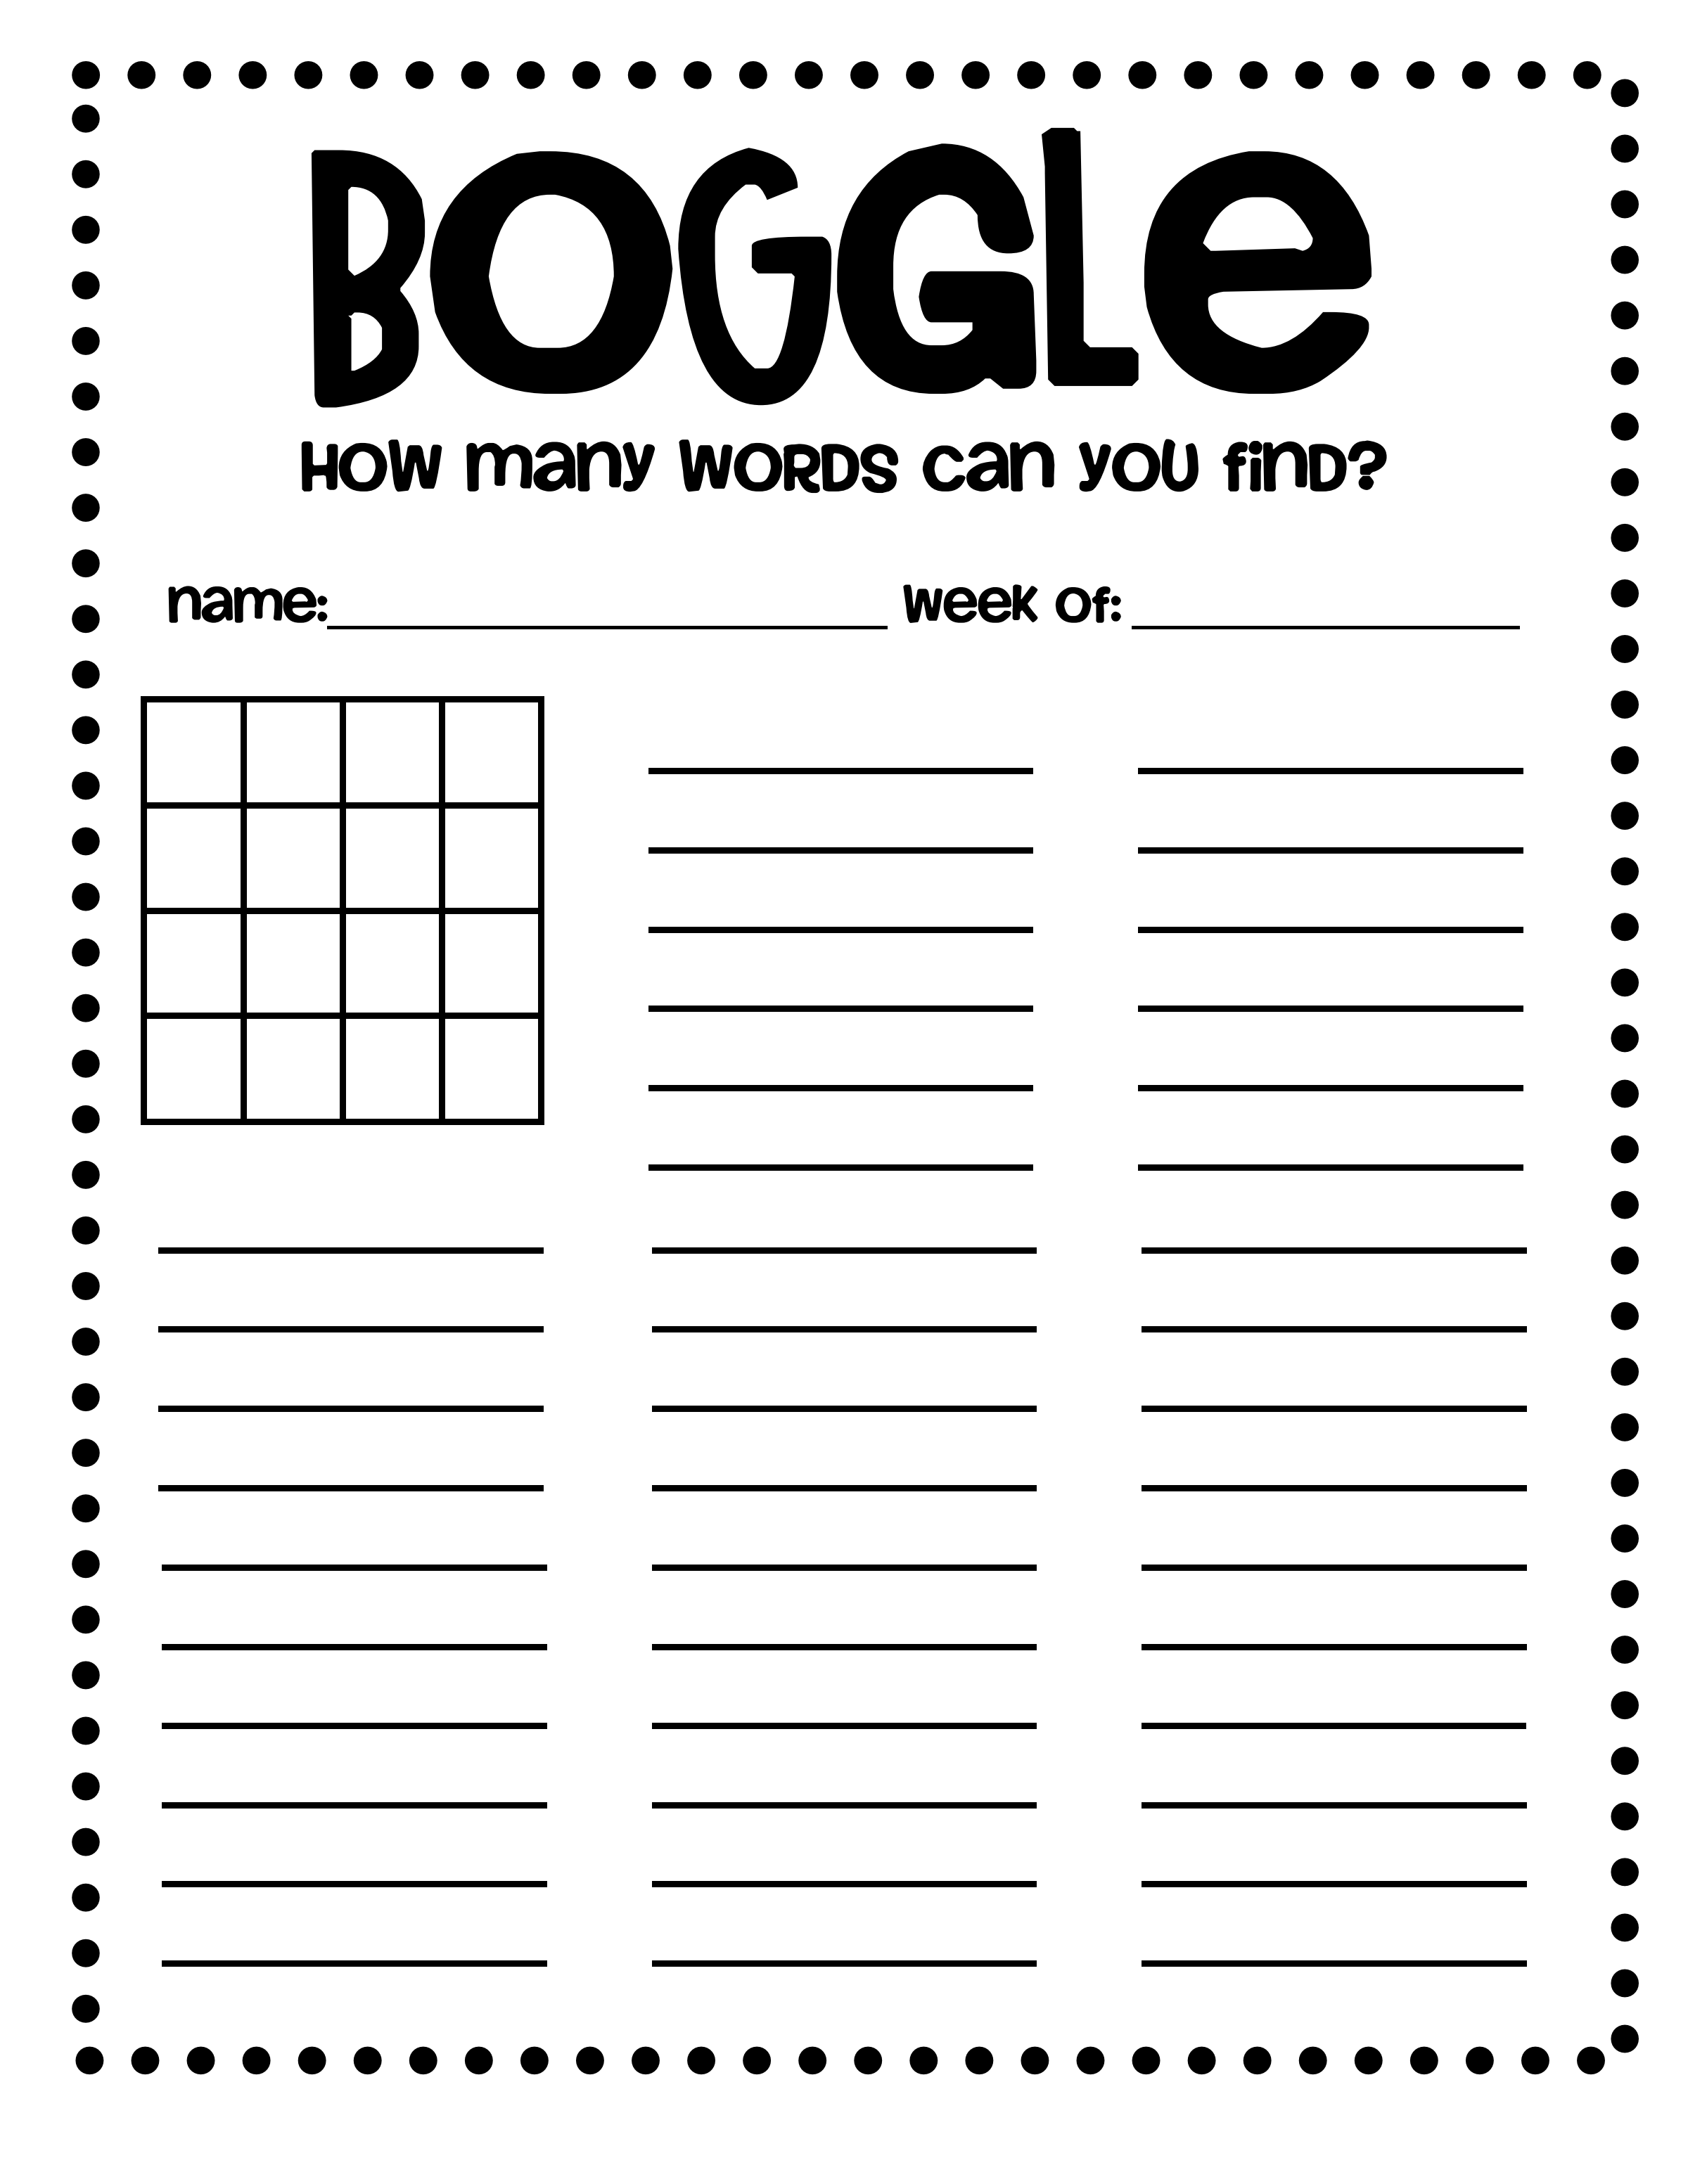 boggle word games template